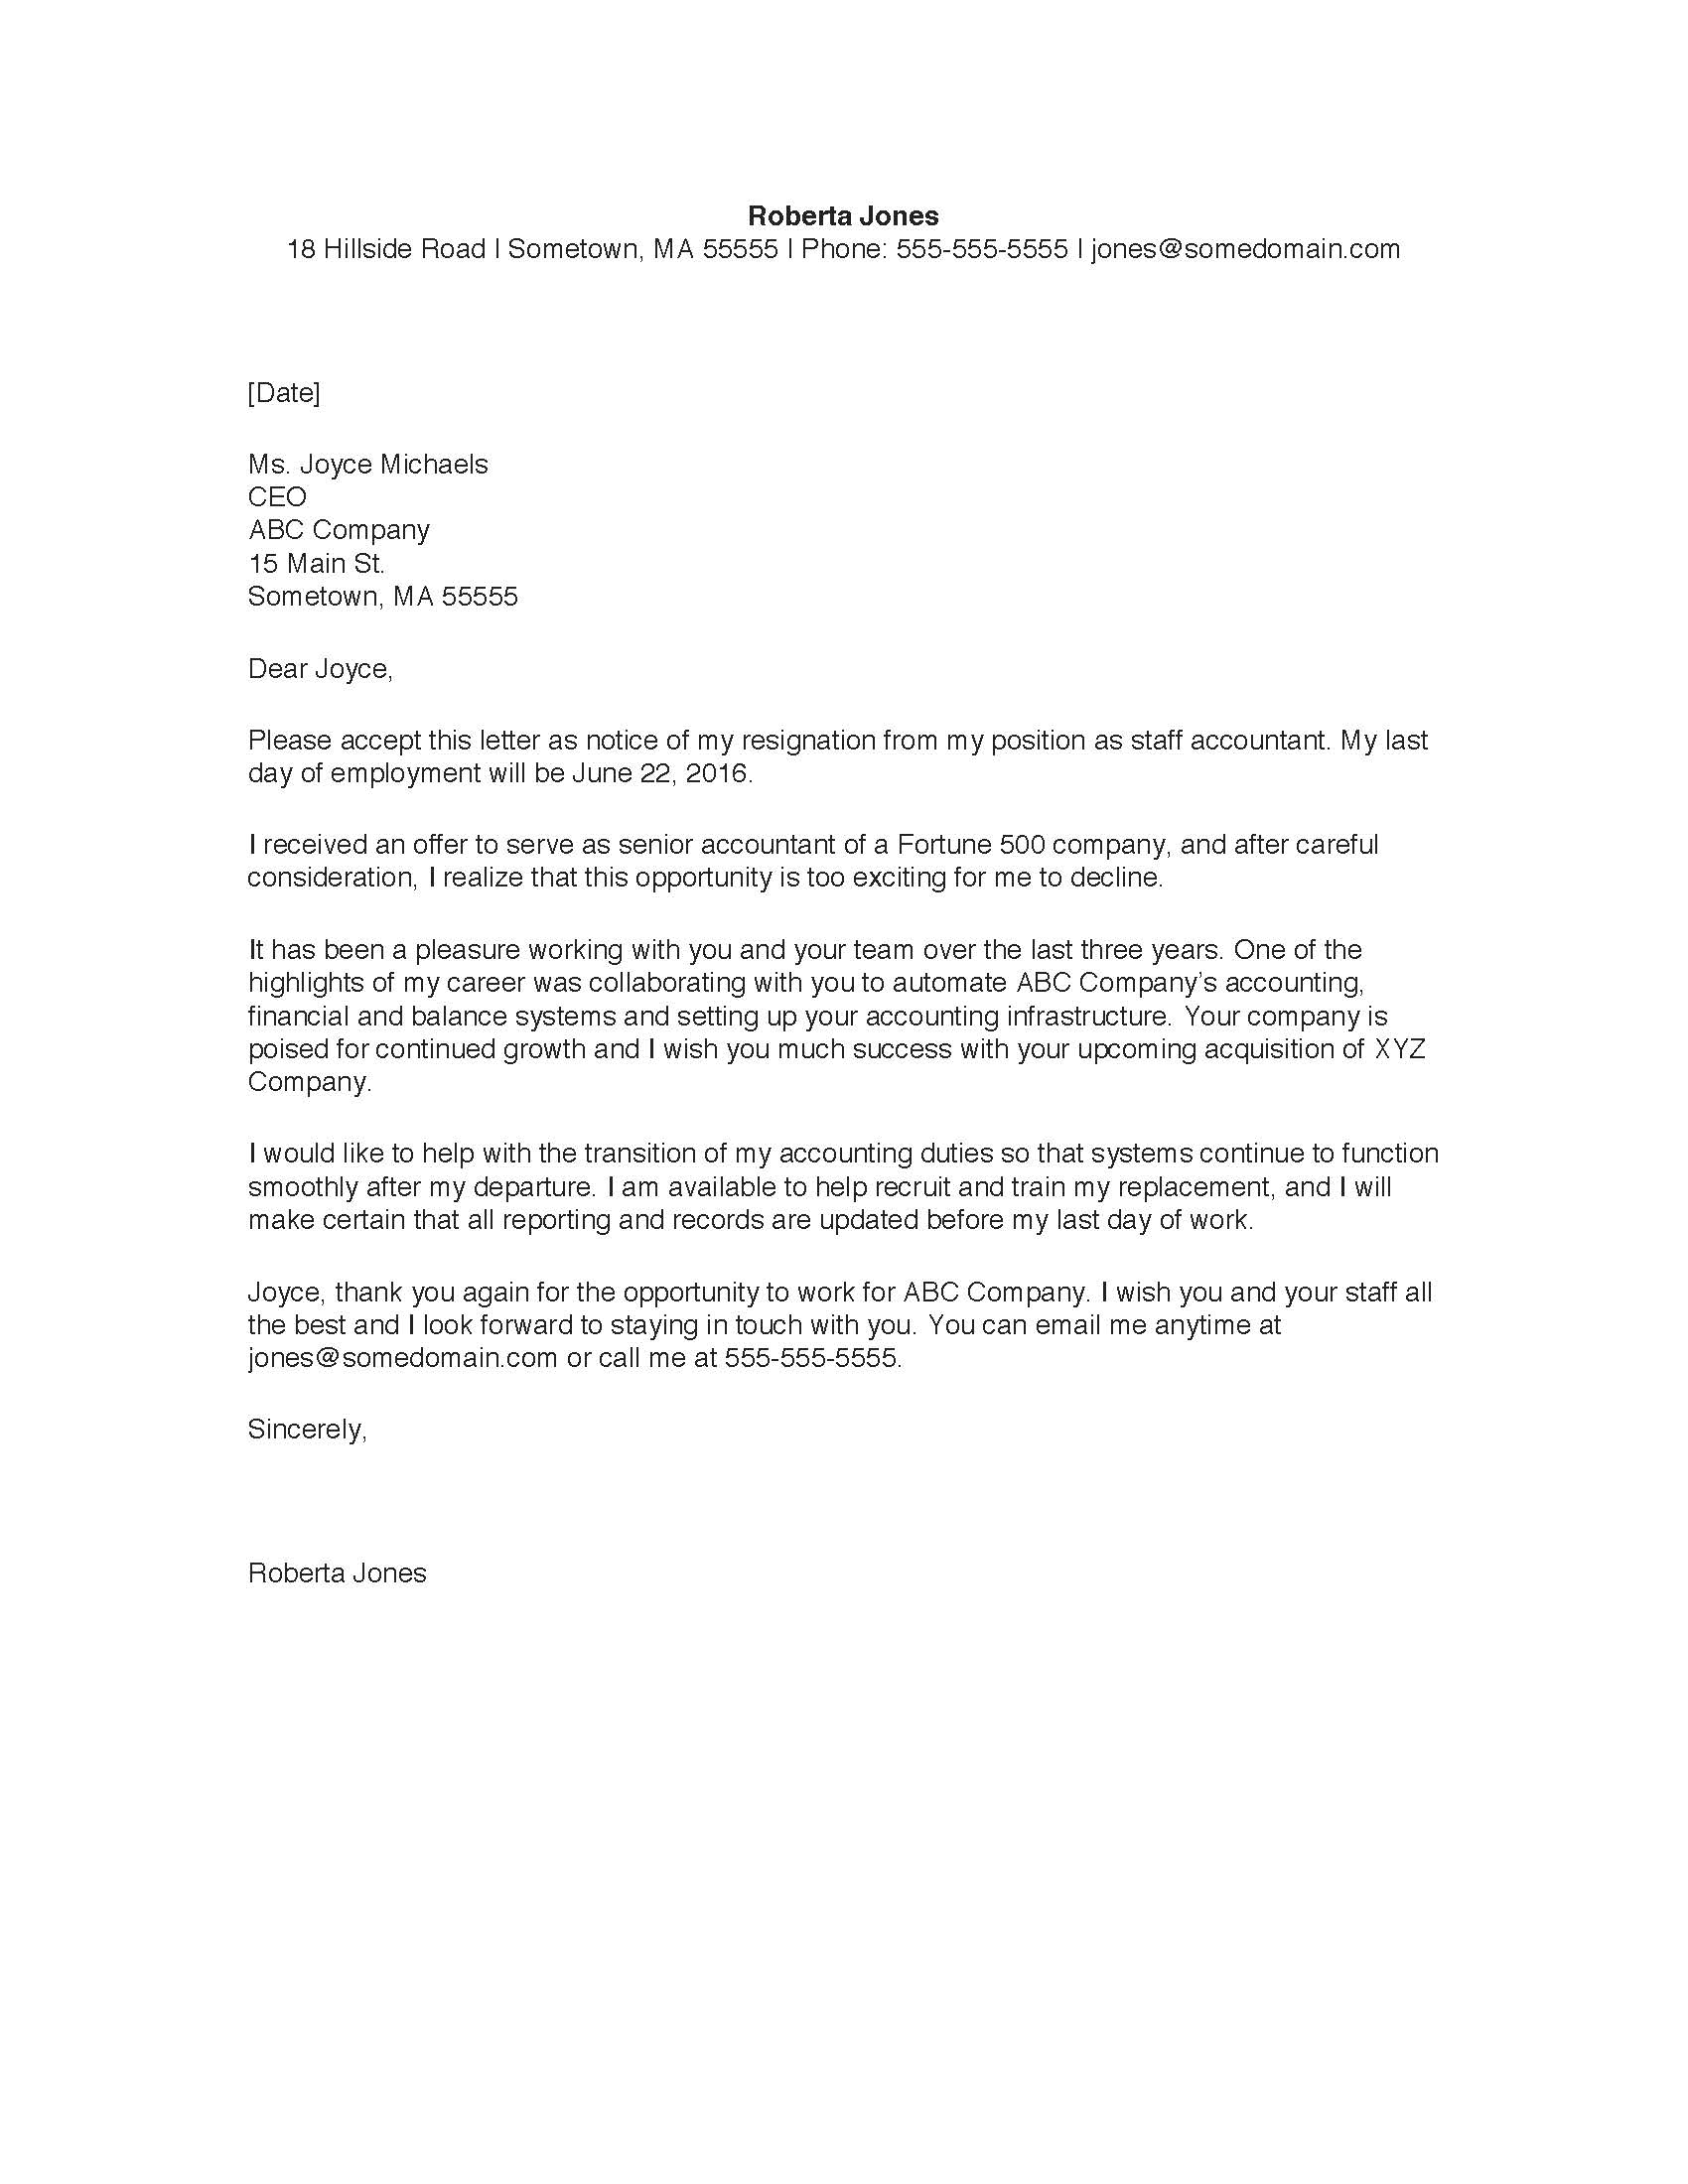 Sample resignation letter monster sample resignation letter madrichimfo Images